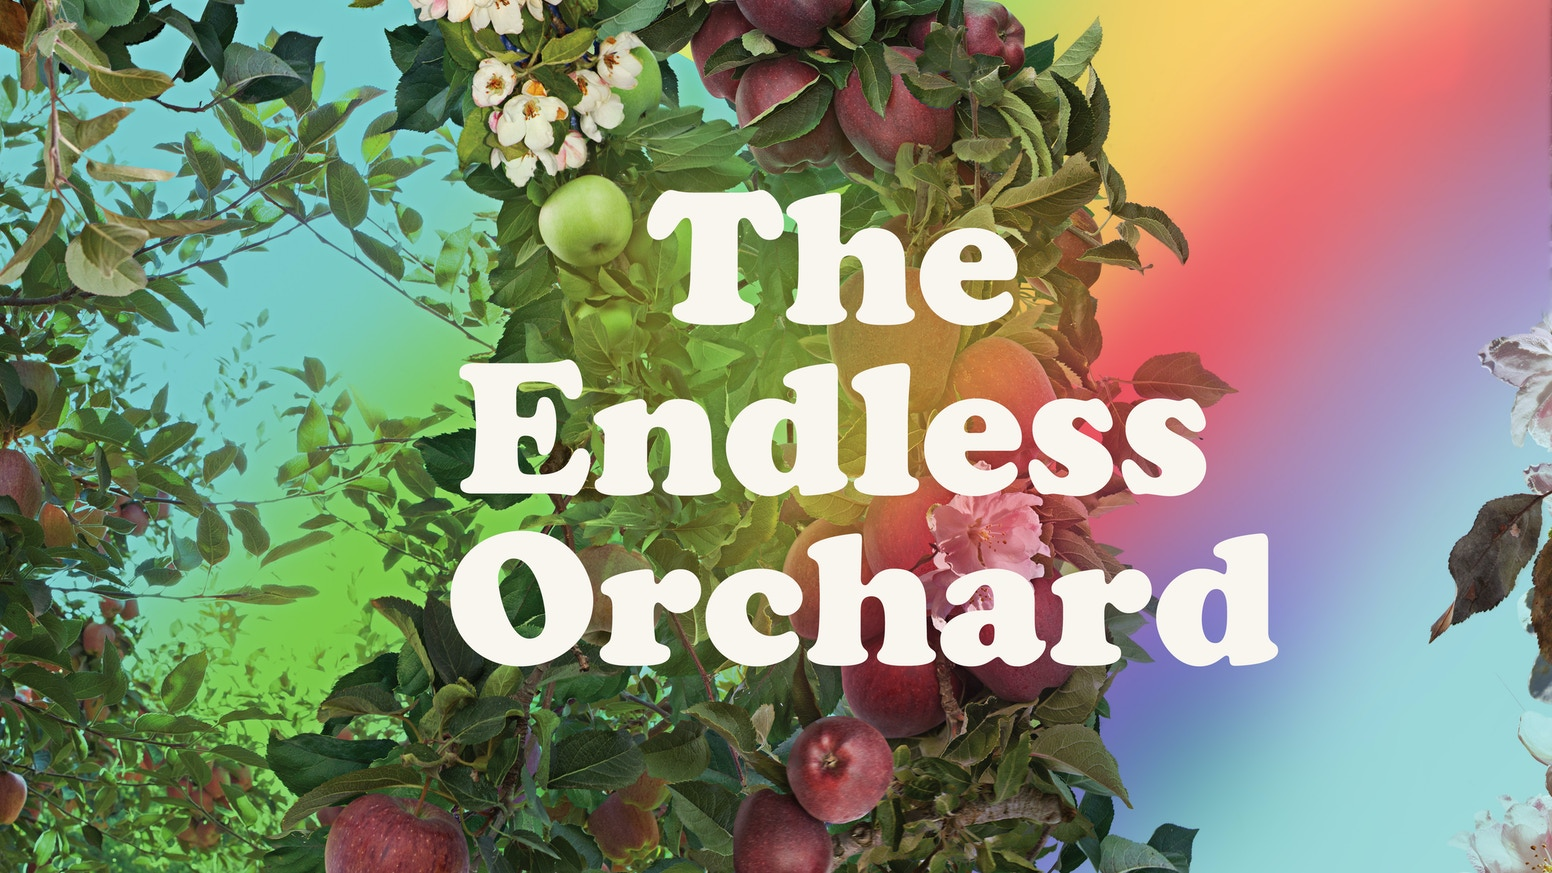 The Endless Orchard - a sustainable, edible, living public artwork- fruit trees planted and mapped by the public for everyone to share.